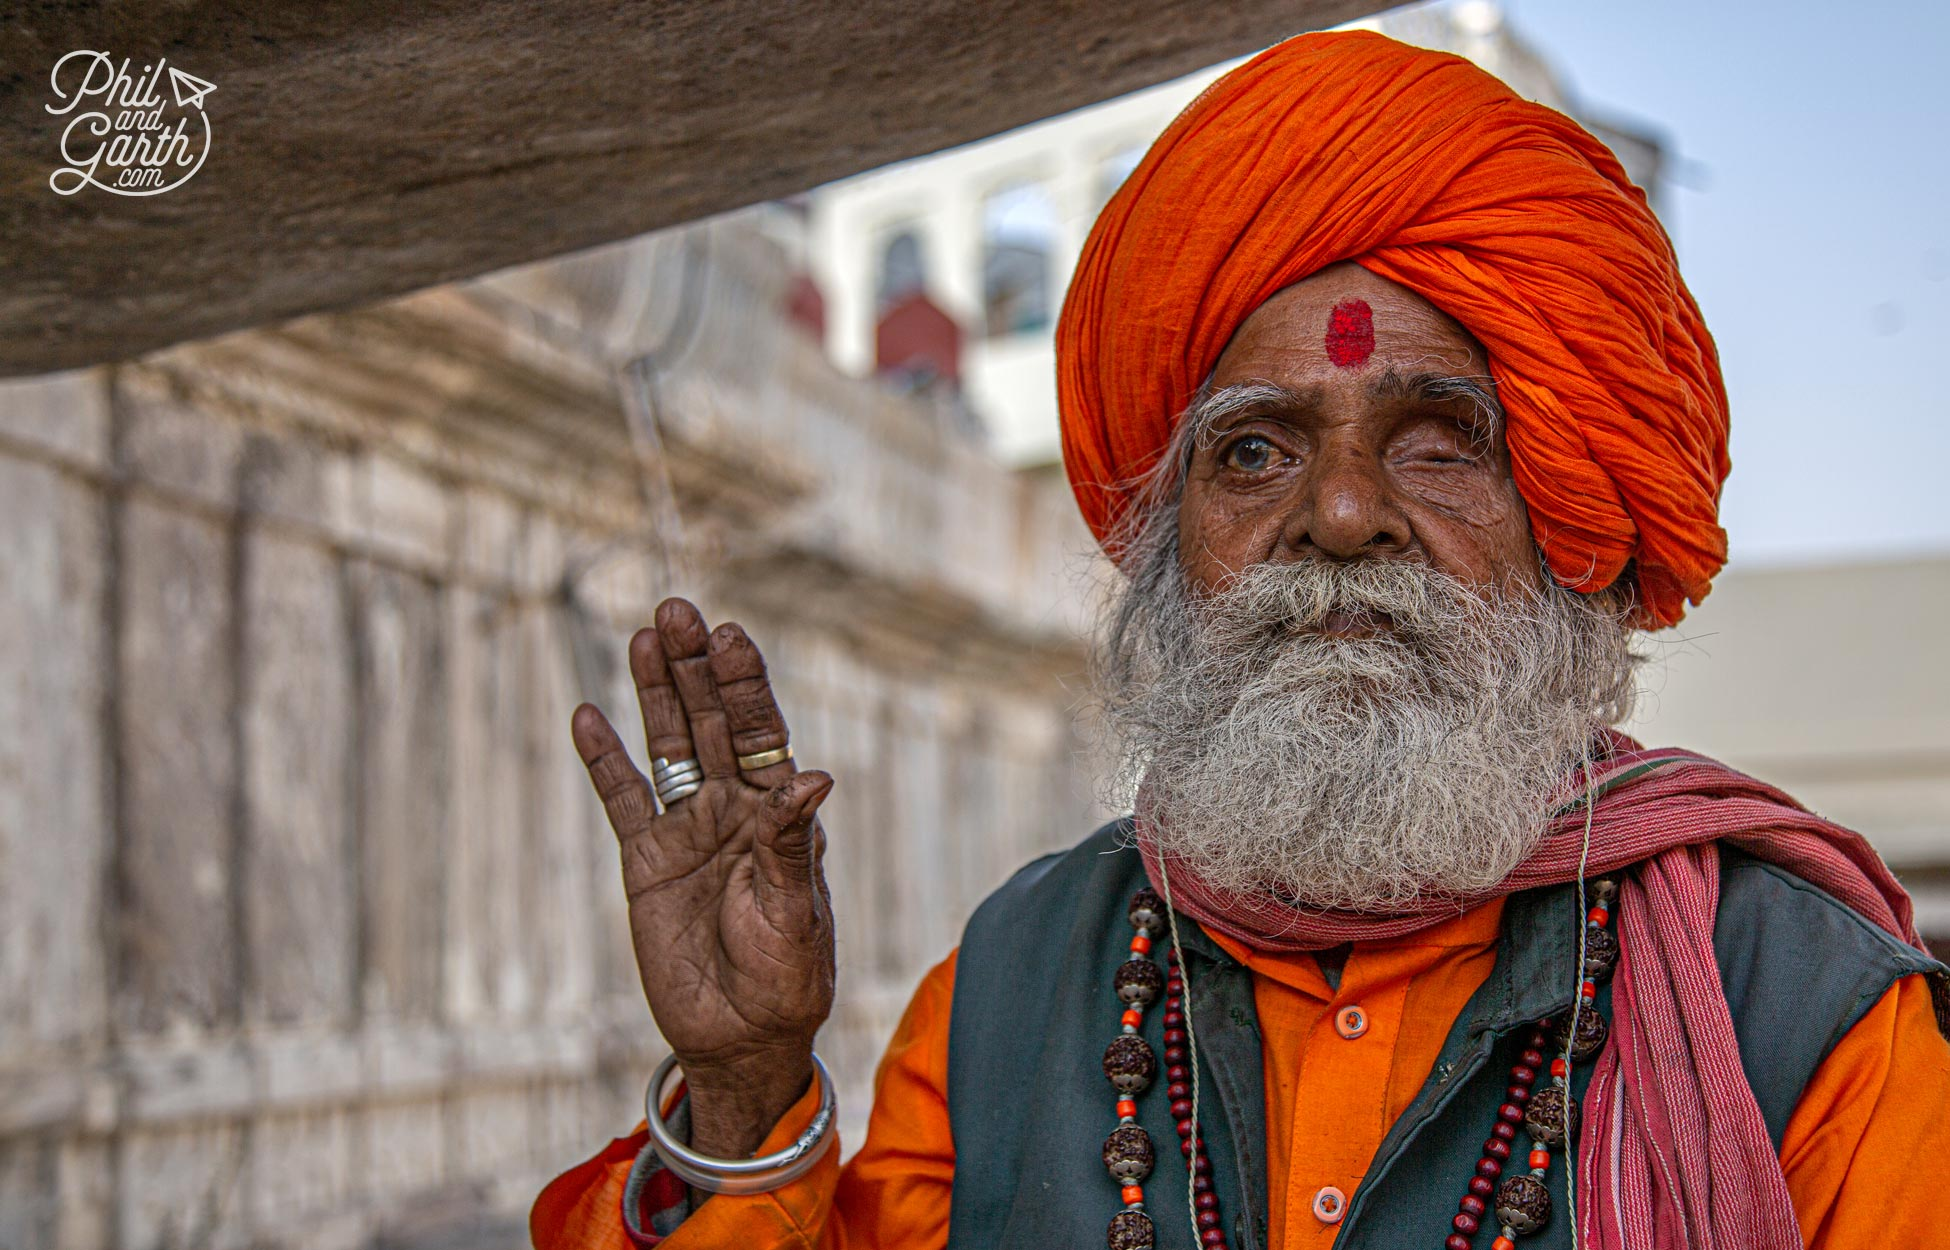 Sadhus sit outside the entrance to the Jagdish Temple. If you want to take pictures ask them first and offer some rupees